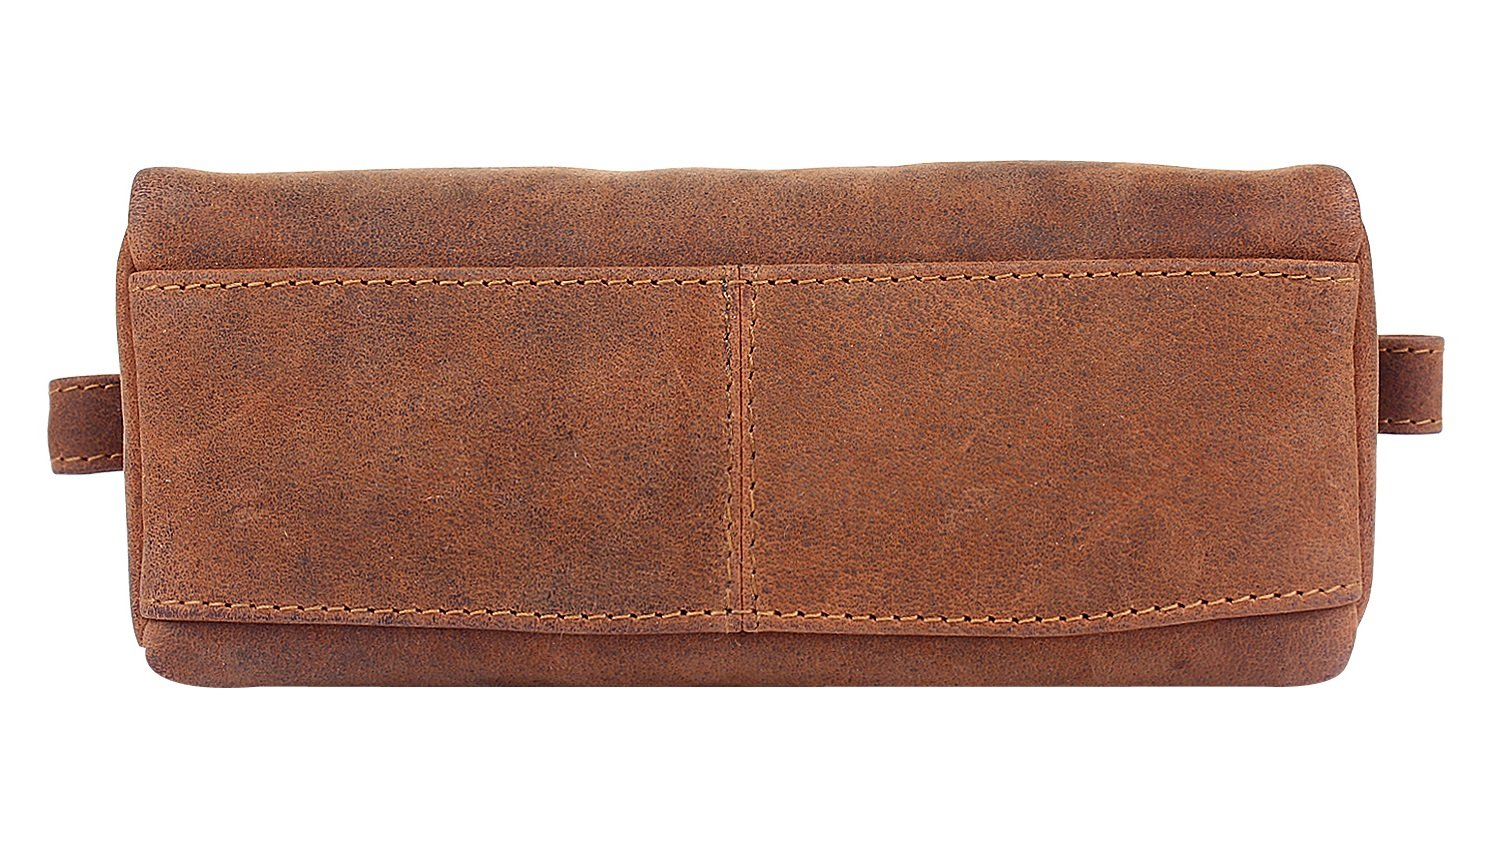 Leather Pencil Case - Zippered Pen Pouch for School, Work & Office by Rustic Town by RusticTown (Image #7)